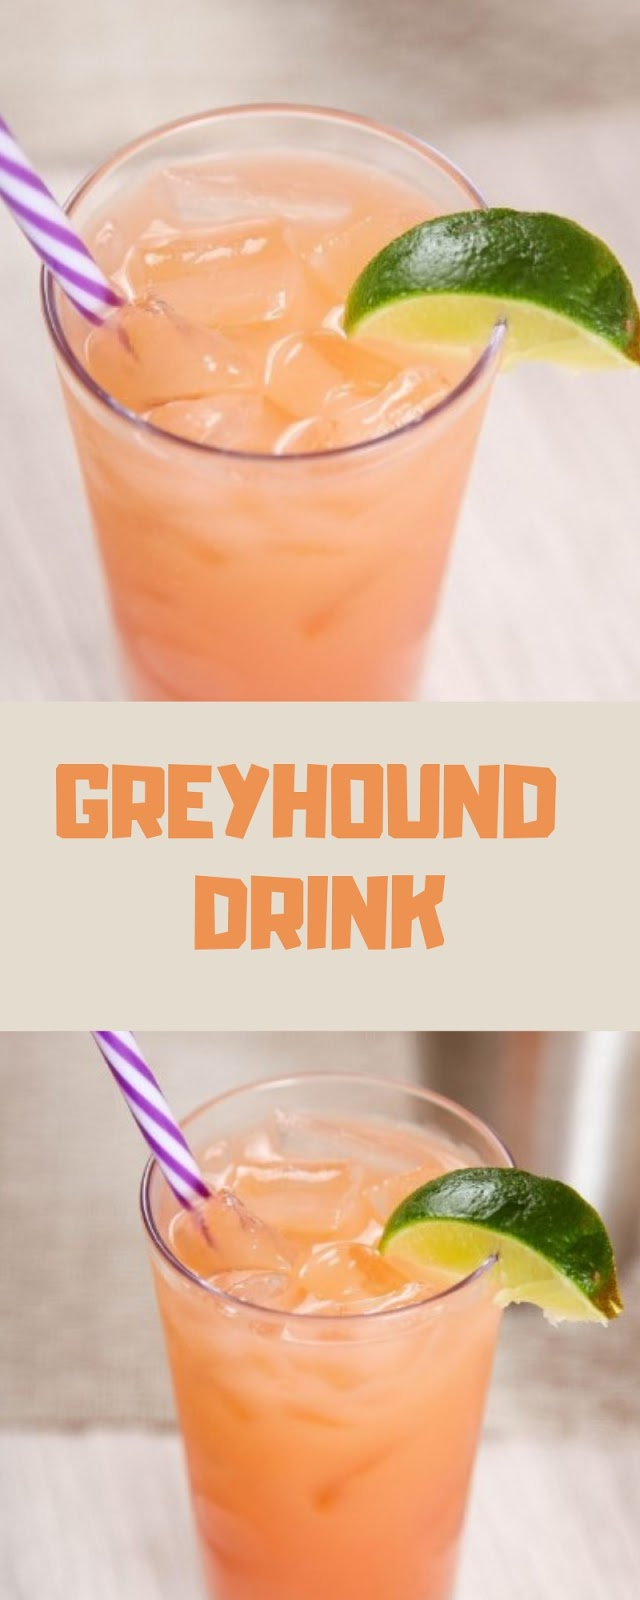 GREYHOUND DRINK